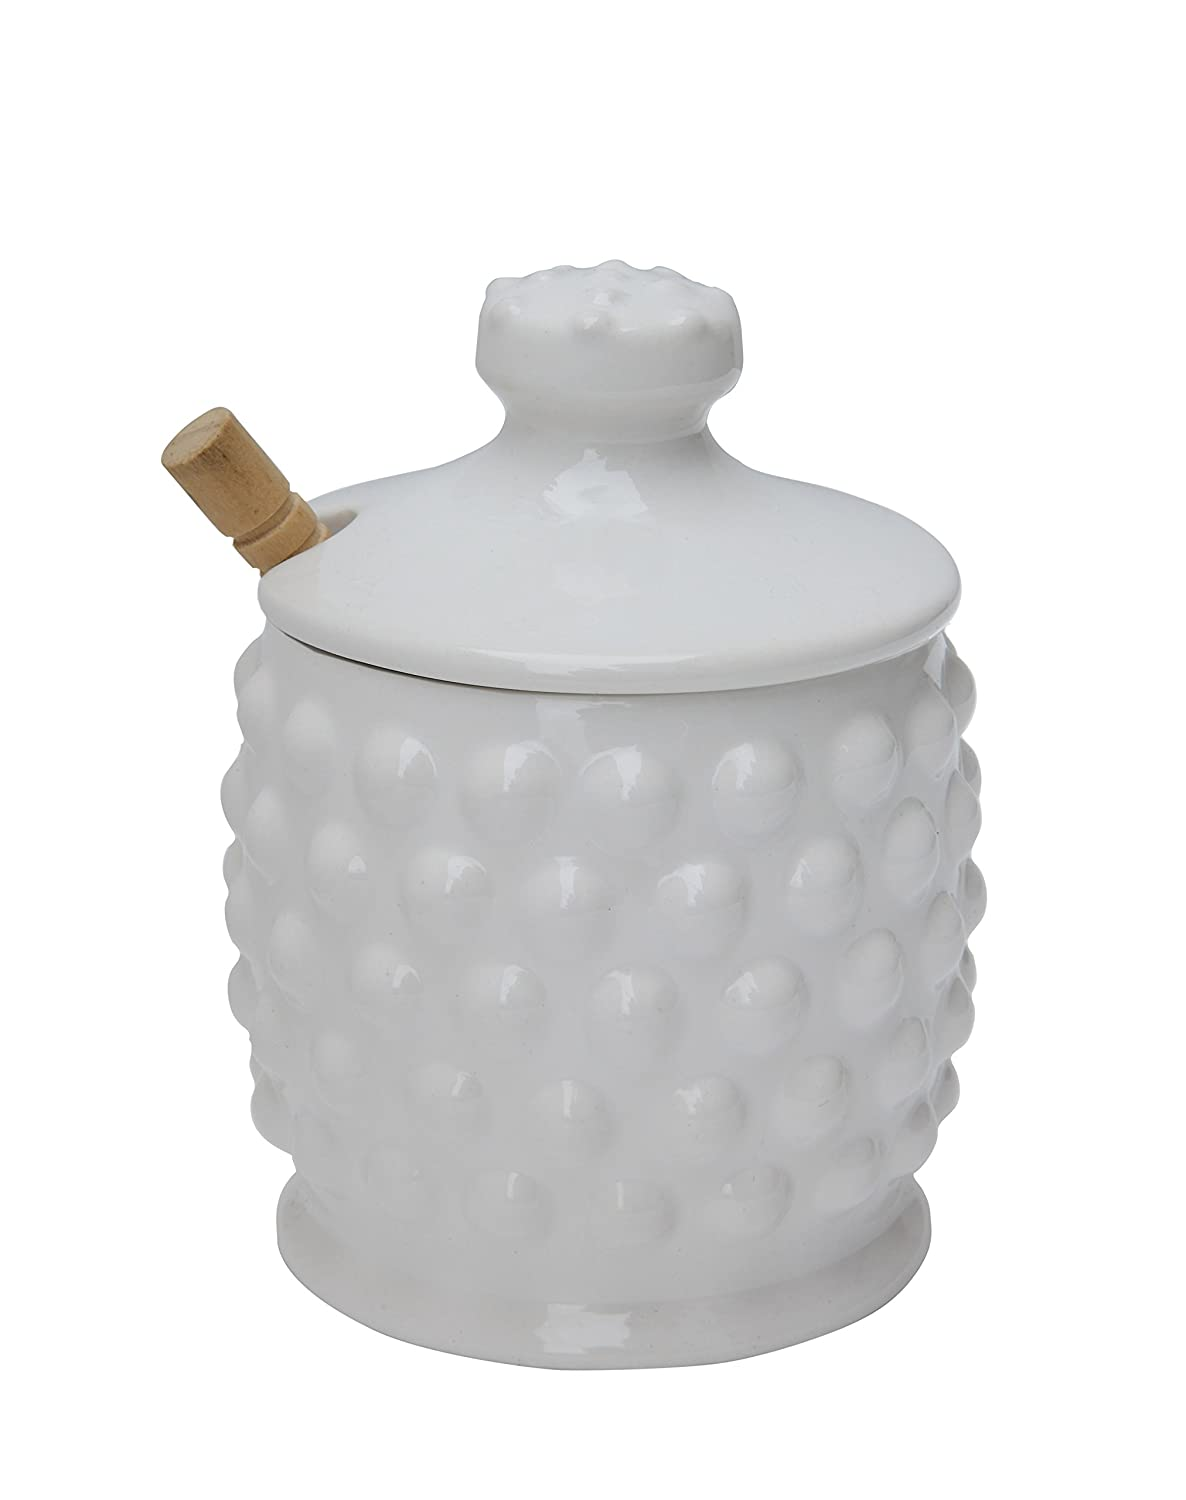 Creative Co-op Dolomite Hobnail Style Honey Jar with Wood Dipper, White DA4847